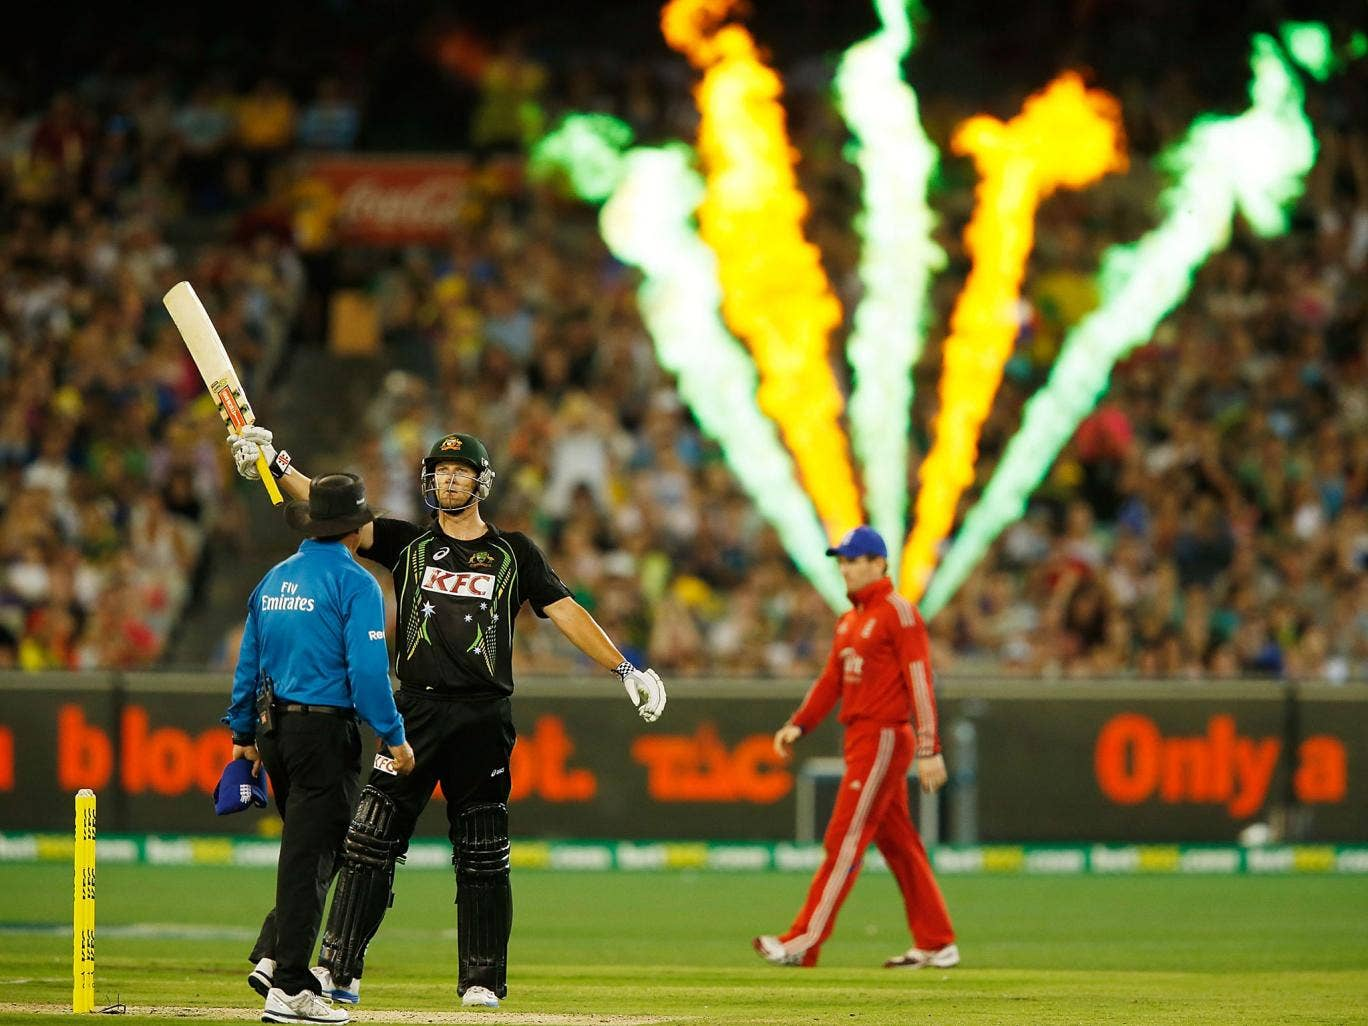 Cameron White of Australia raises his bat after reaching 50 runs during game two of the International Twenty20 series between Australia and England